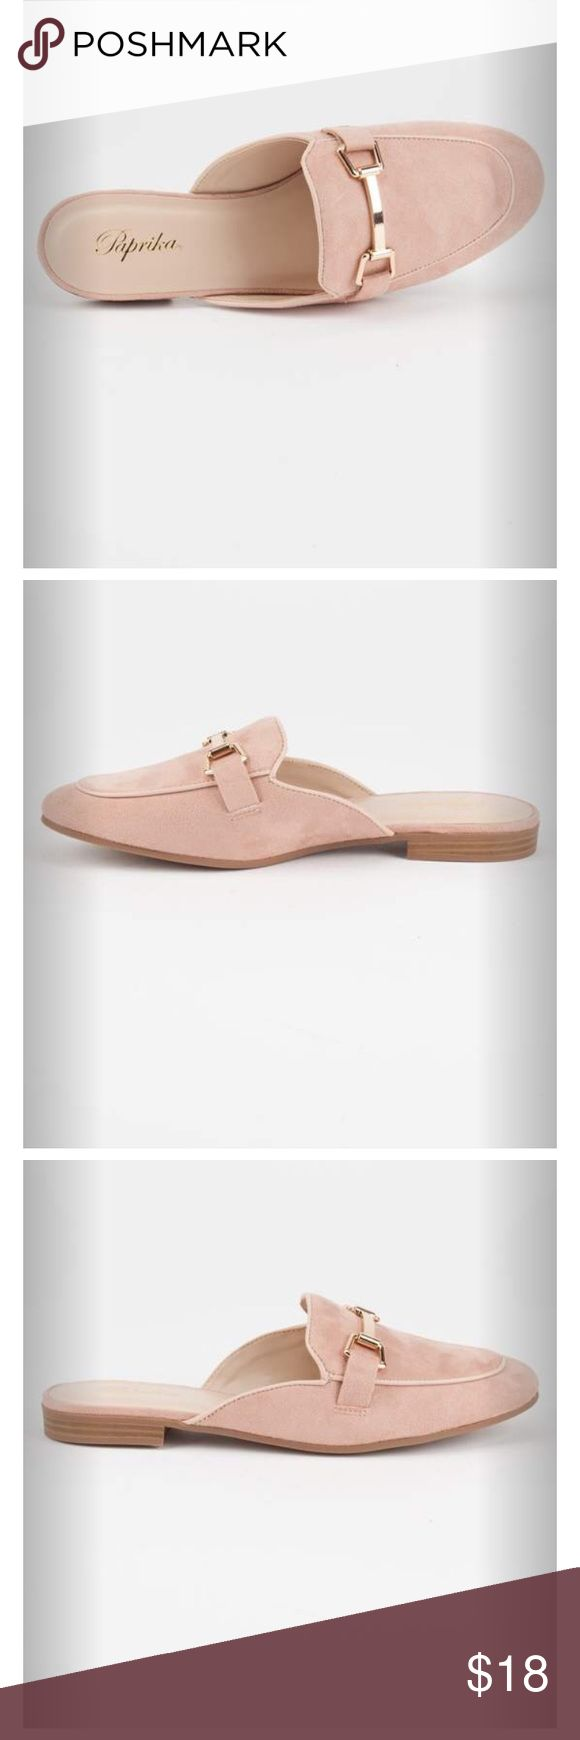 PAPRIKA Solid Womens Mule Loafers (Mauve) Super cute loafers! It's new with tags and box! True to size! Paprika Shoes Flats & Loafers